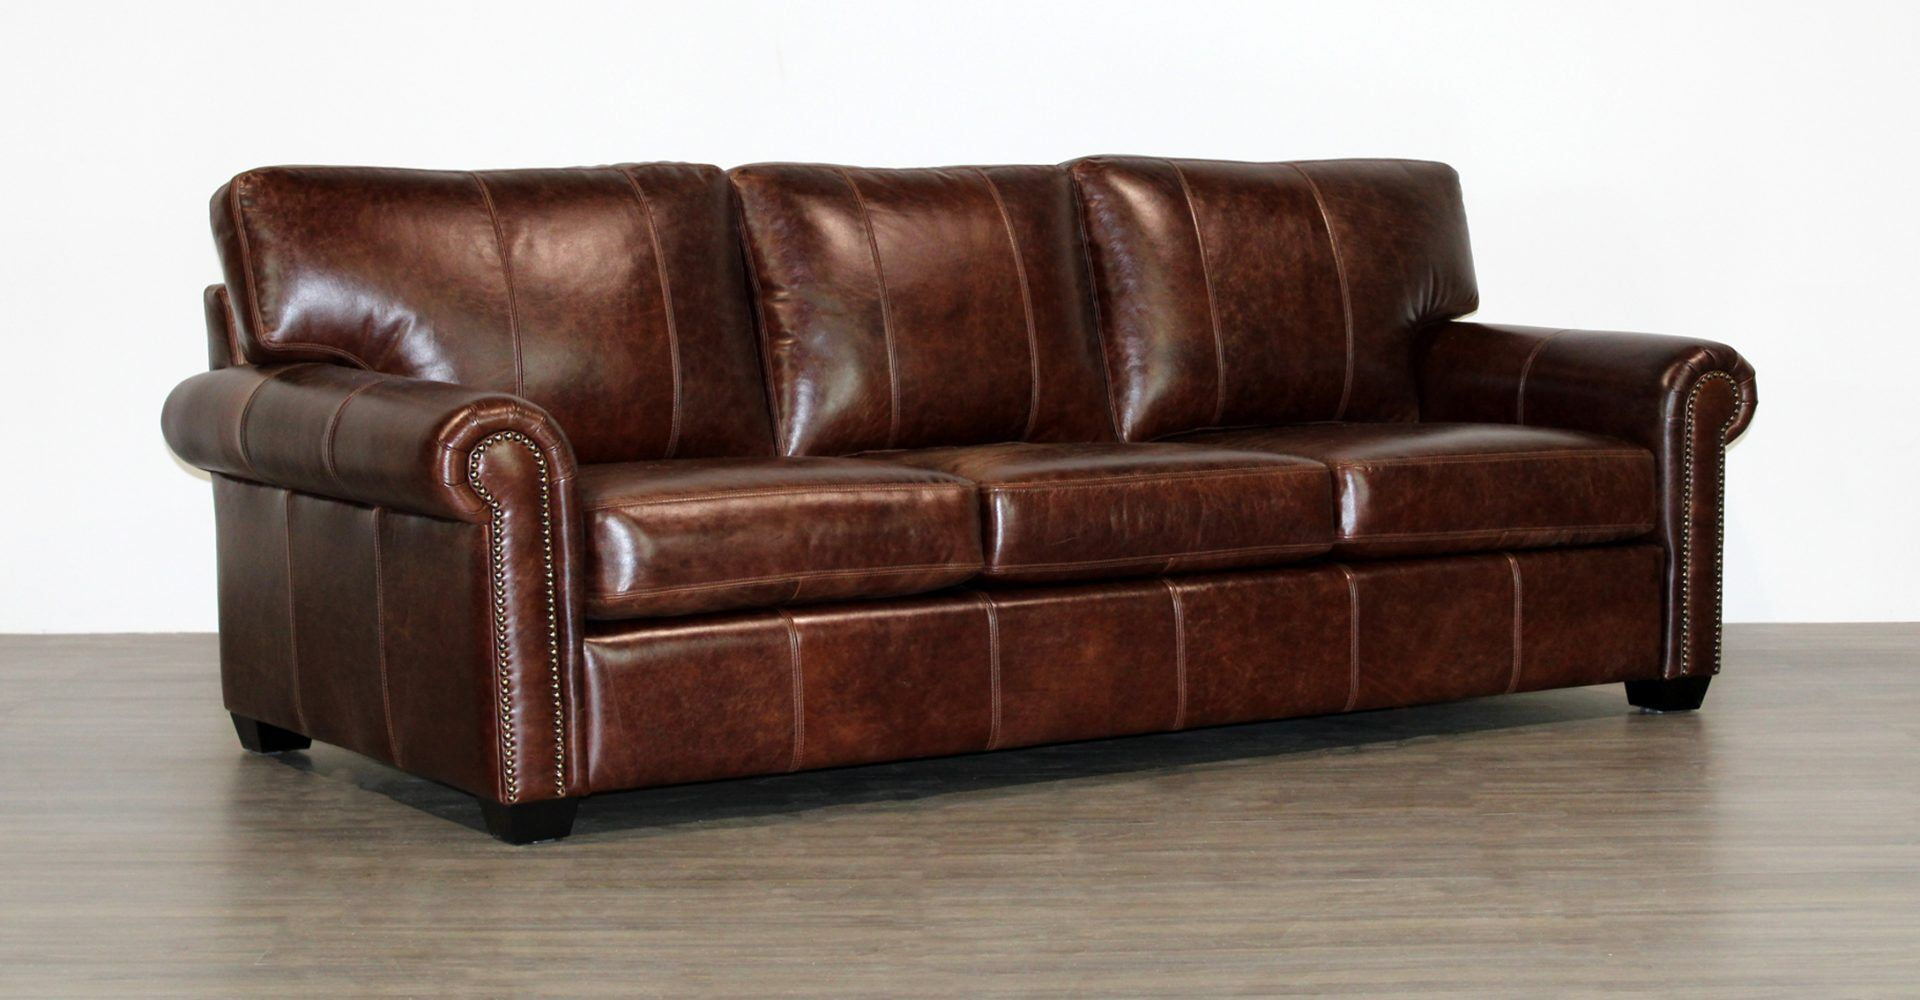 Richmond   Rawhide Intended For Richmond Sofas (View 3 of 15)